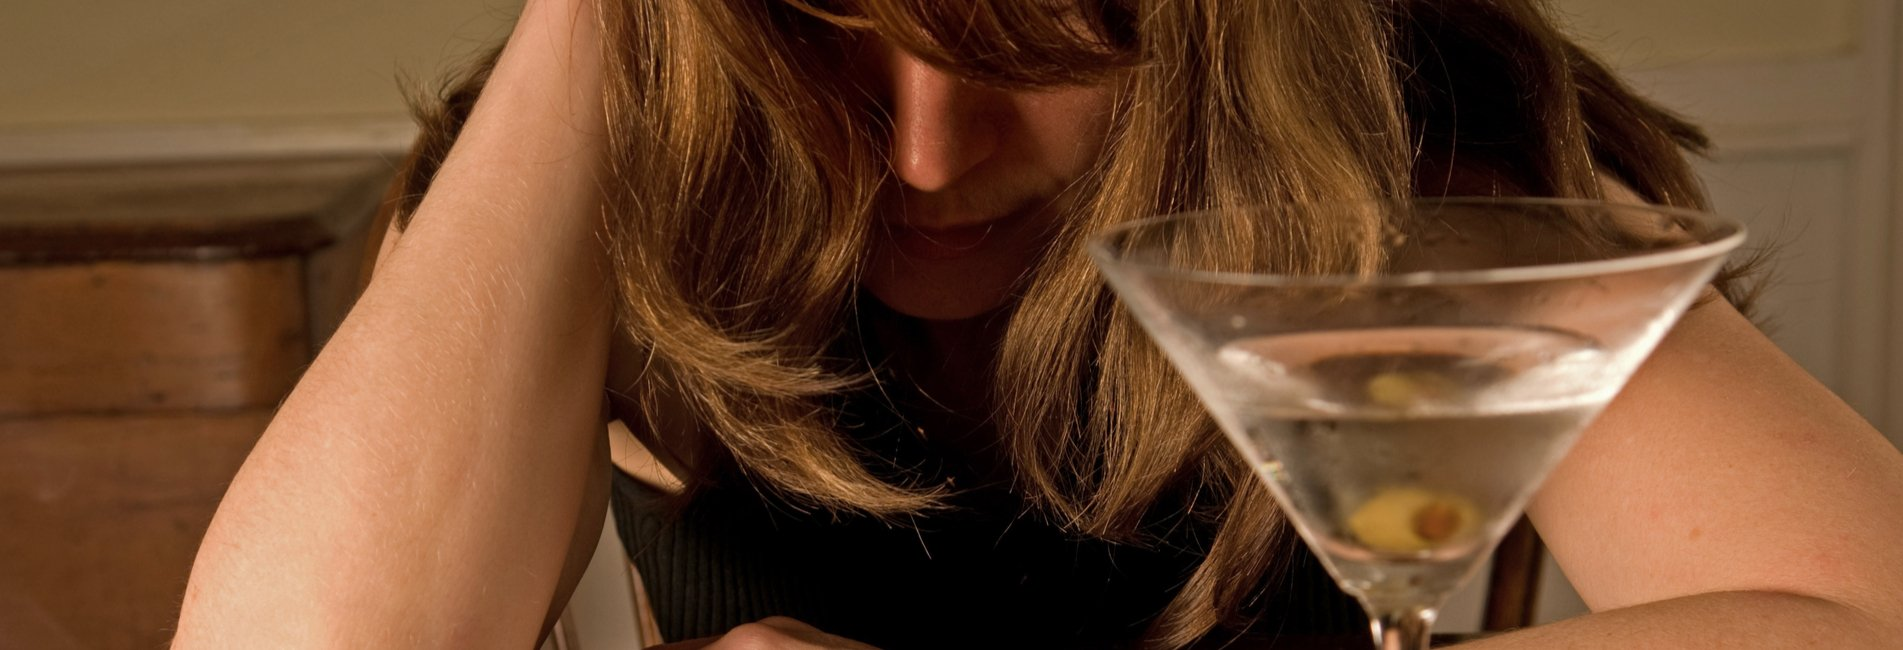 Letting Go of Bad Influences Resurgence – A woman cries with an alcoholic beverage in front of her. She should seek help for substance abuse in a treatment center.